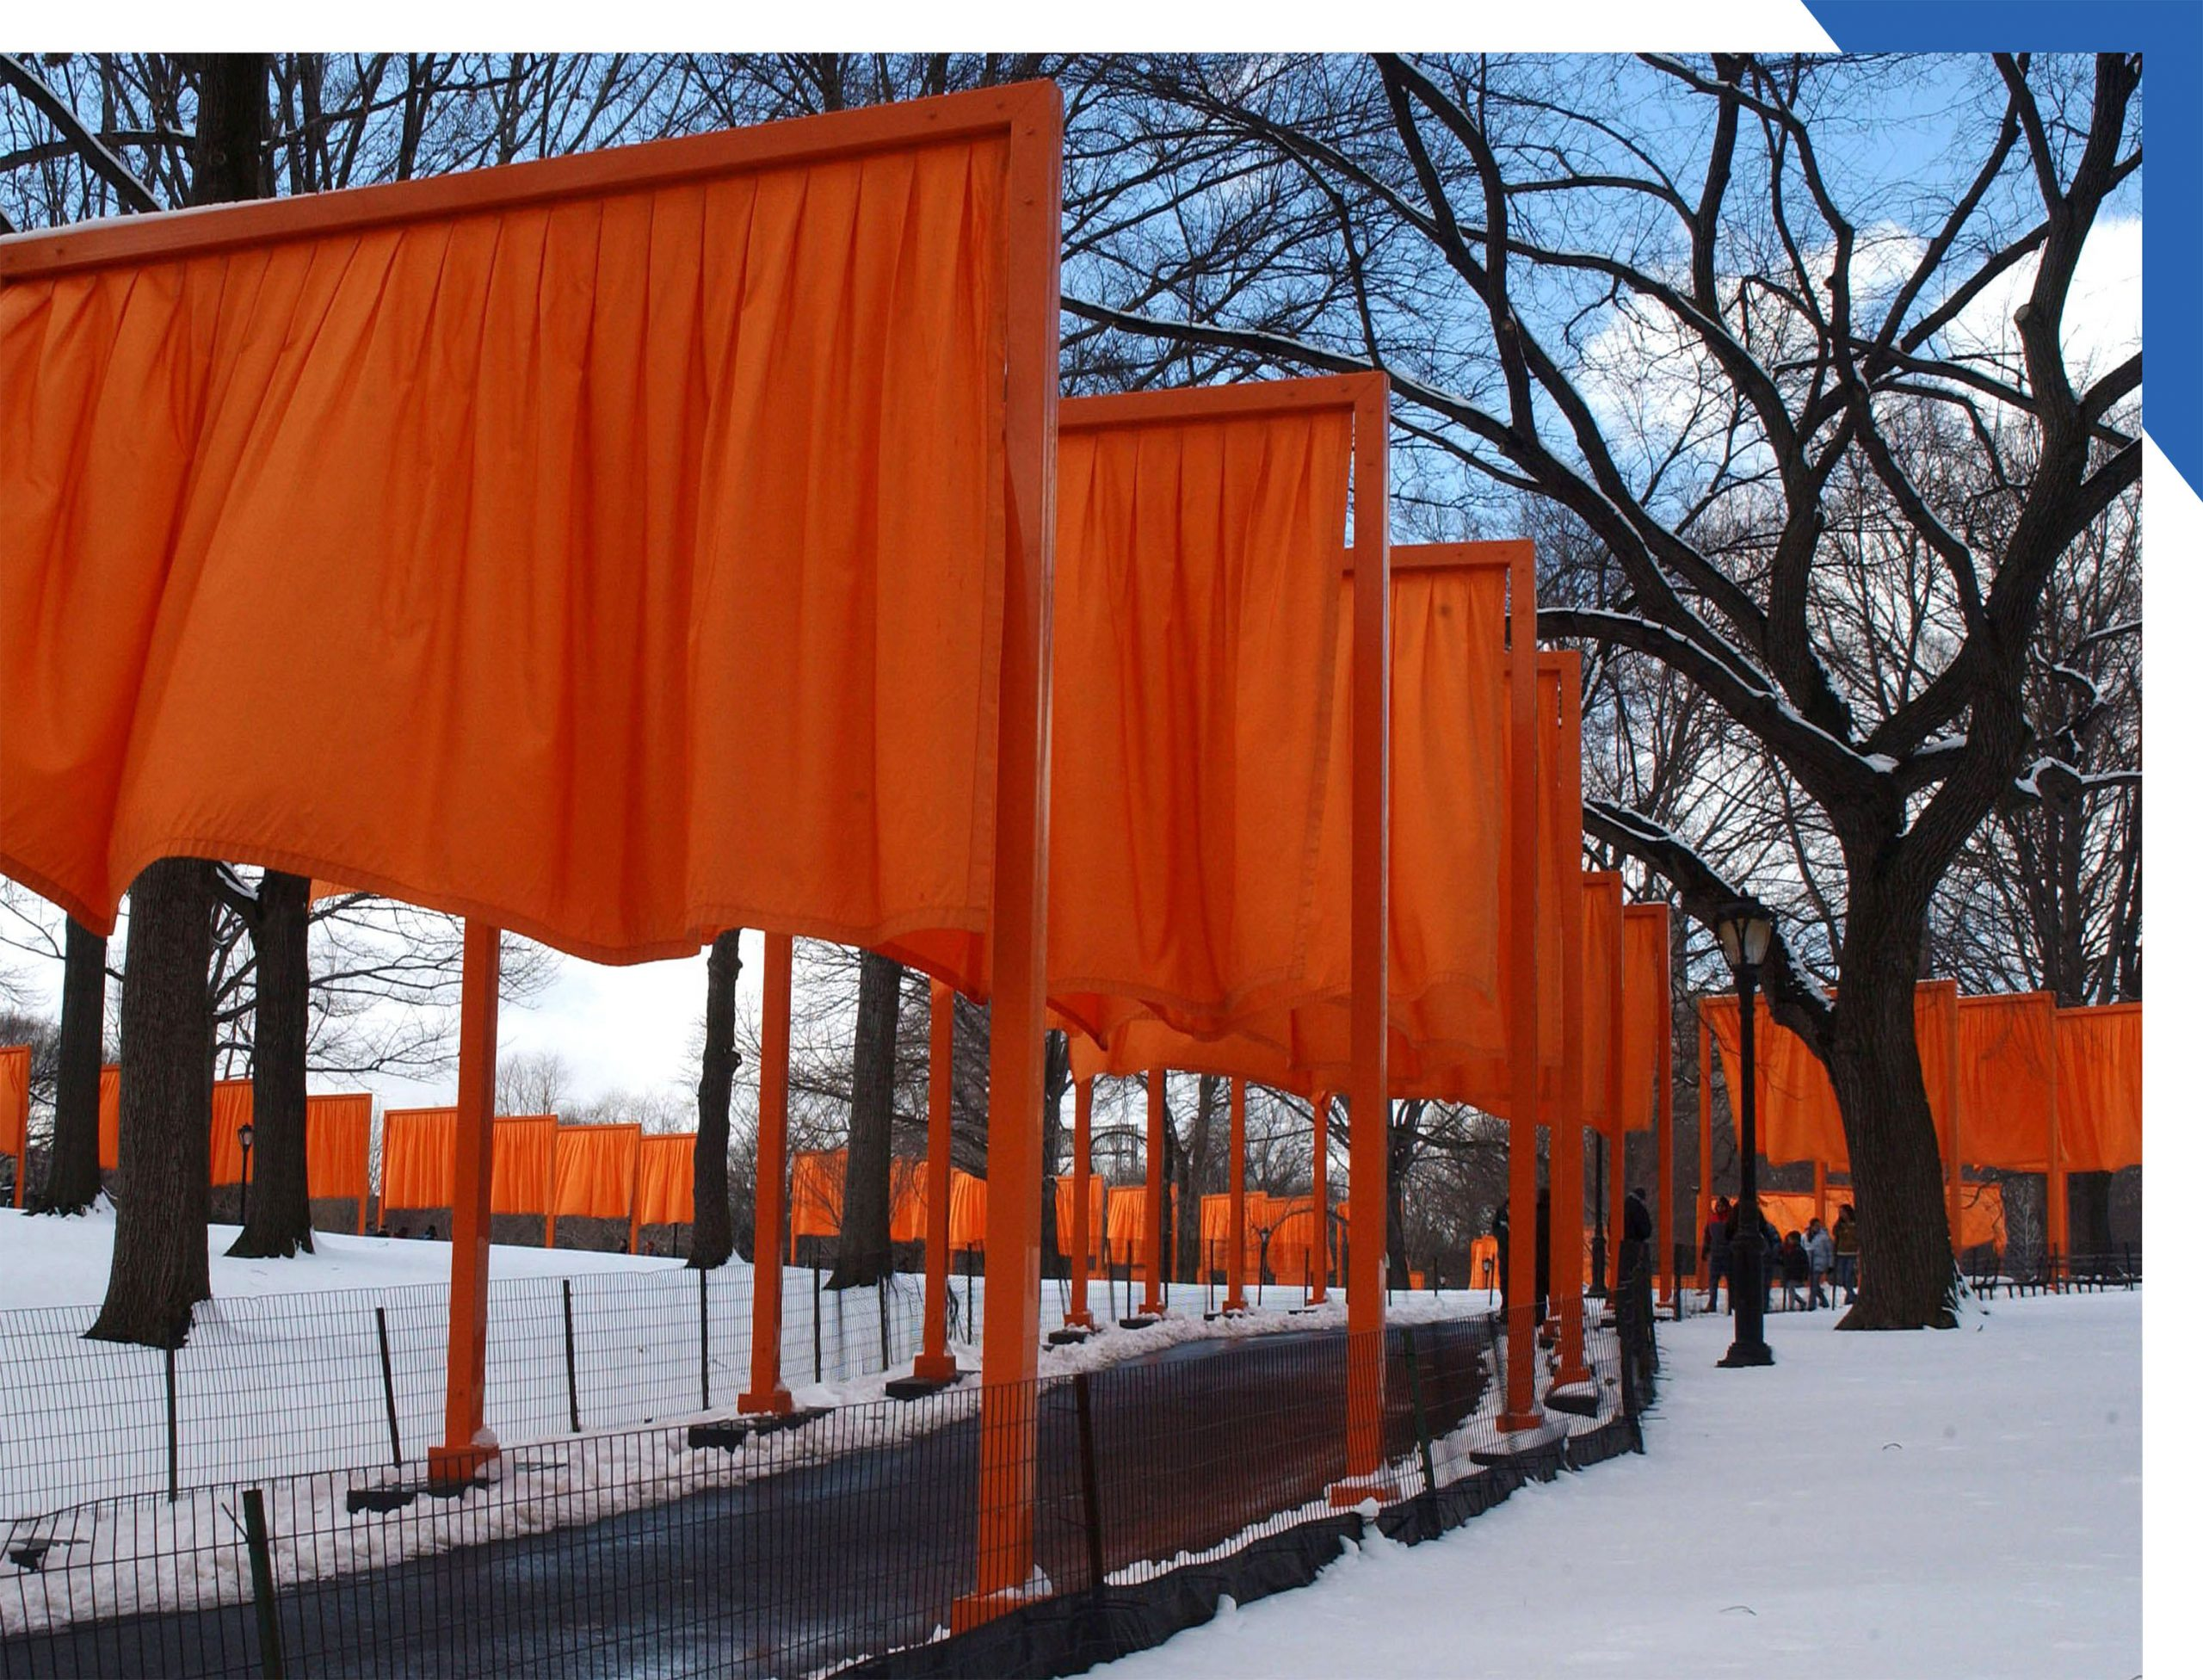 A view of the Gates installation in Central Park